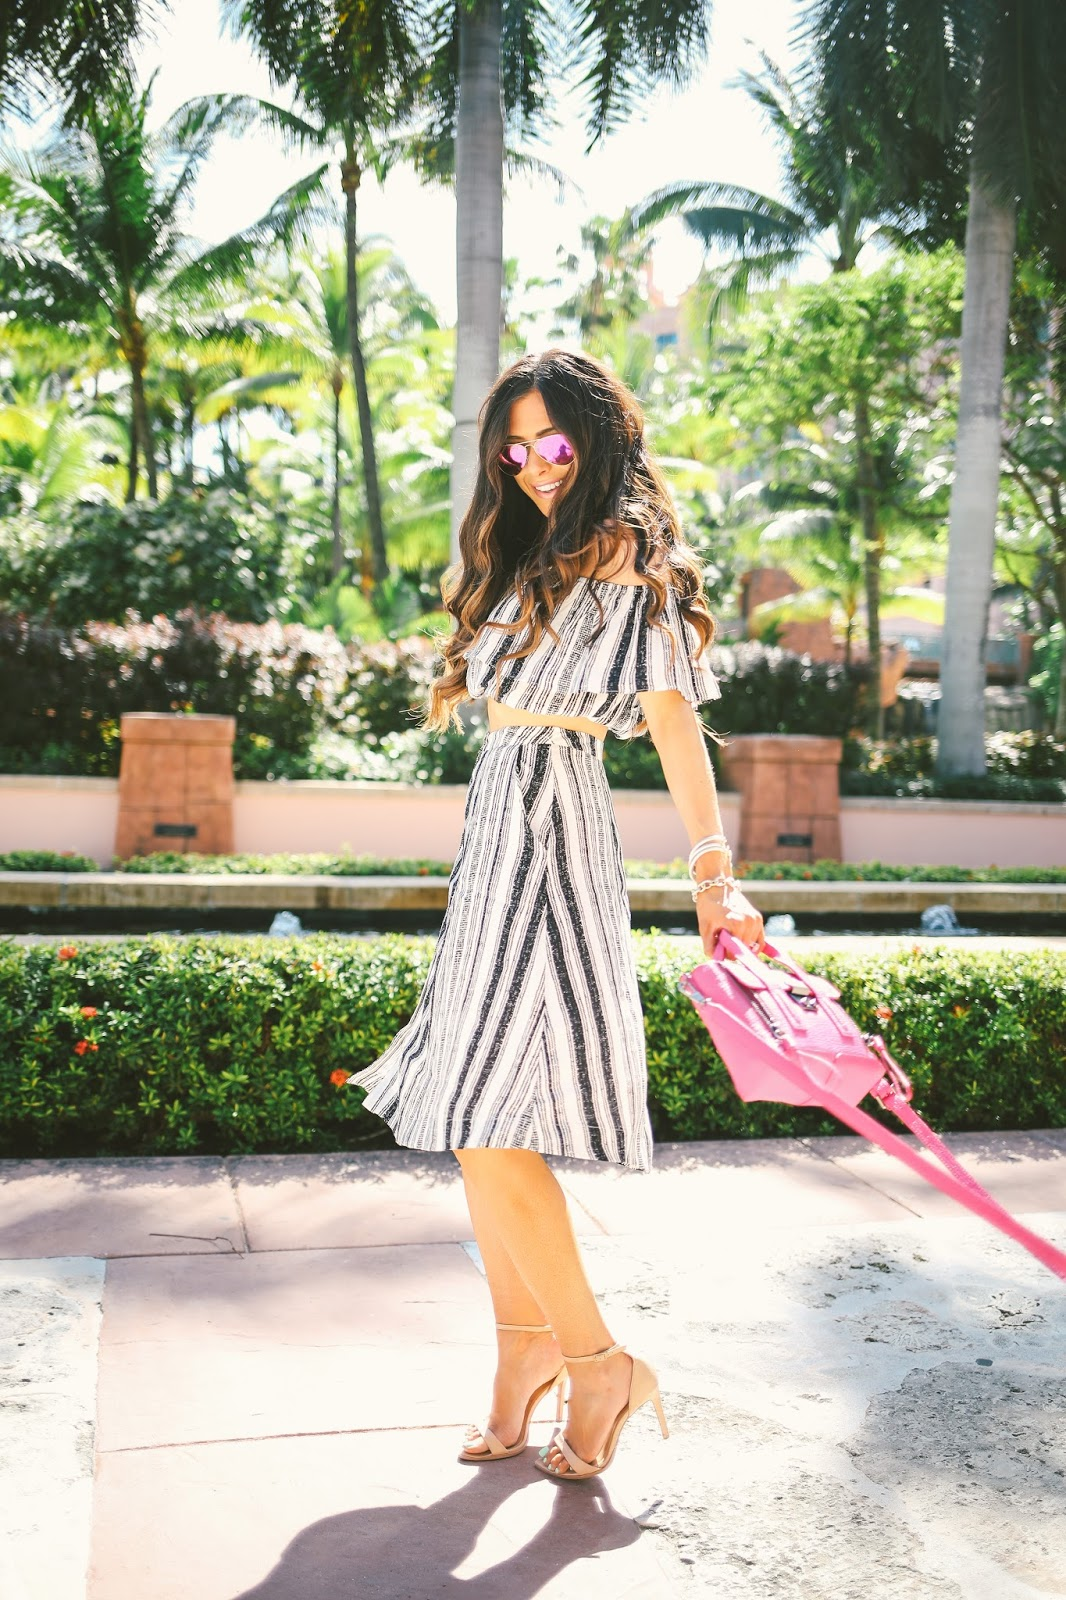 pink ray ban aviators, fuchsia ray ban aviators, ASTR two piece set, striped skirt and crop top outfit, pink phillip lim mini, fushica phillip lim mini, atlantis bahamas, emily gemma blog, the sweetest thing, phillip lim pashli mini